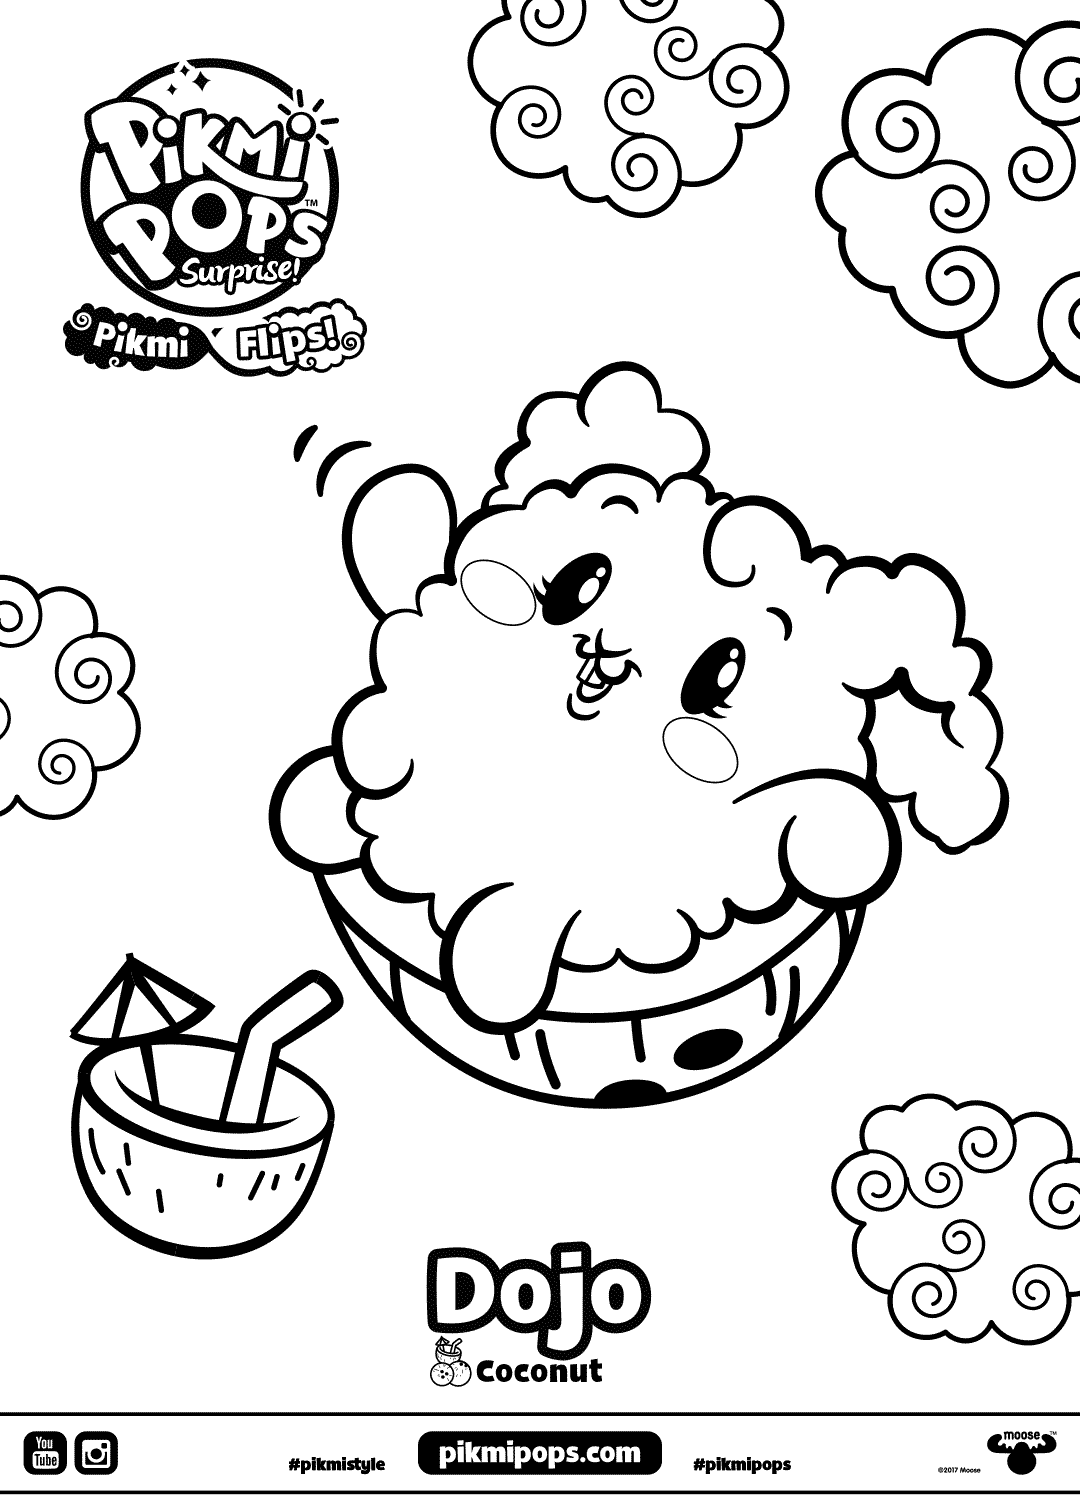 Dojo Pikmi Pops Coloring Pages